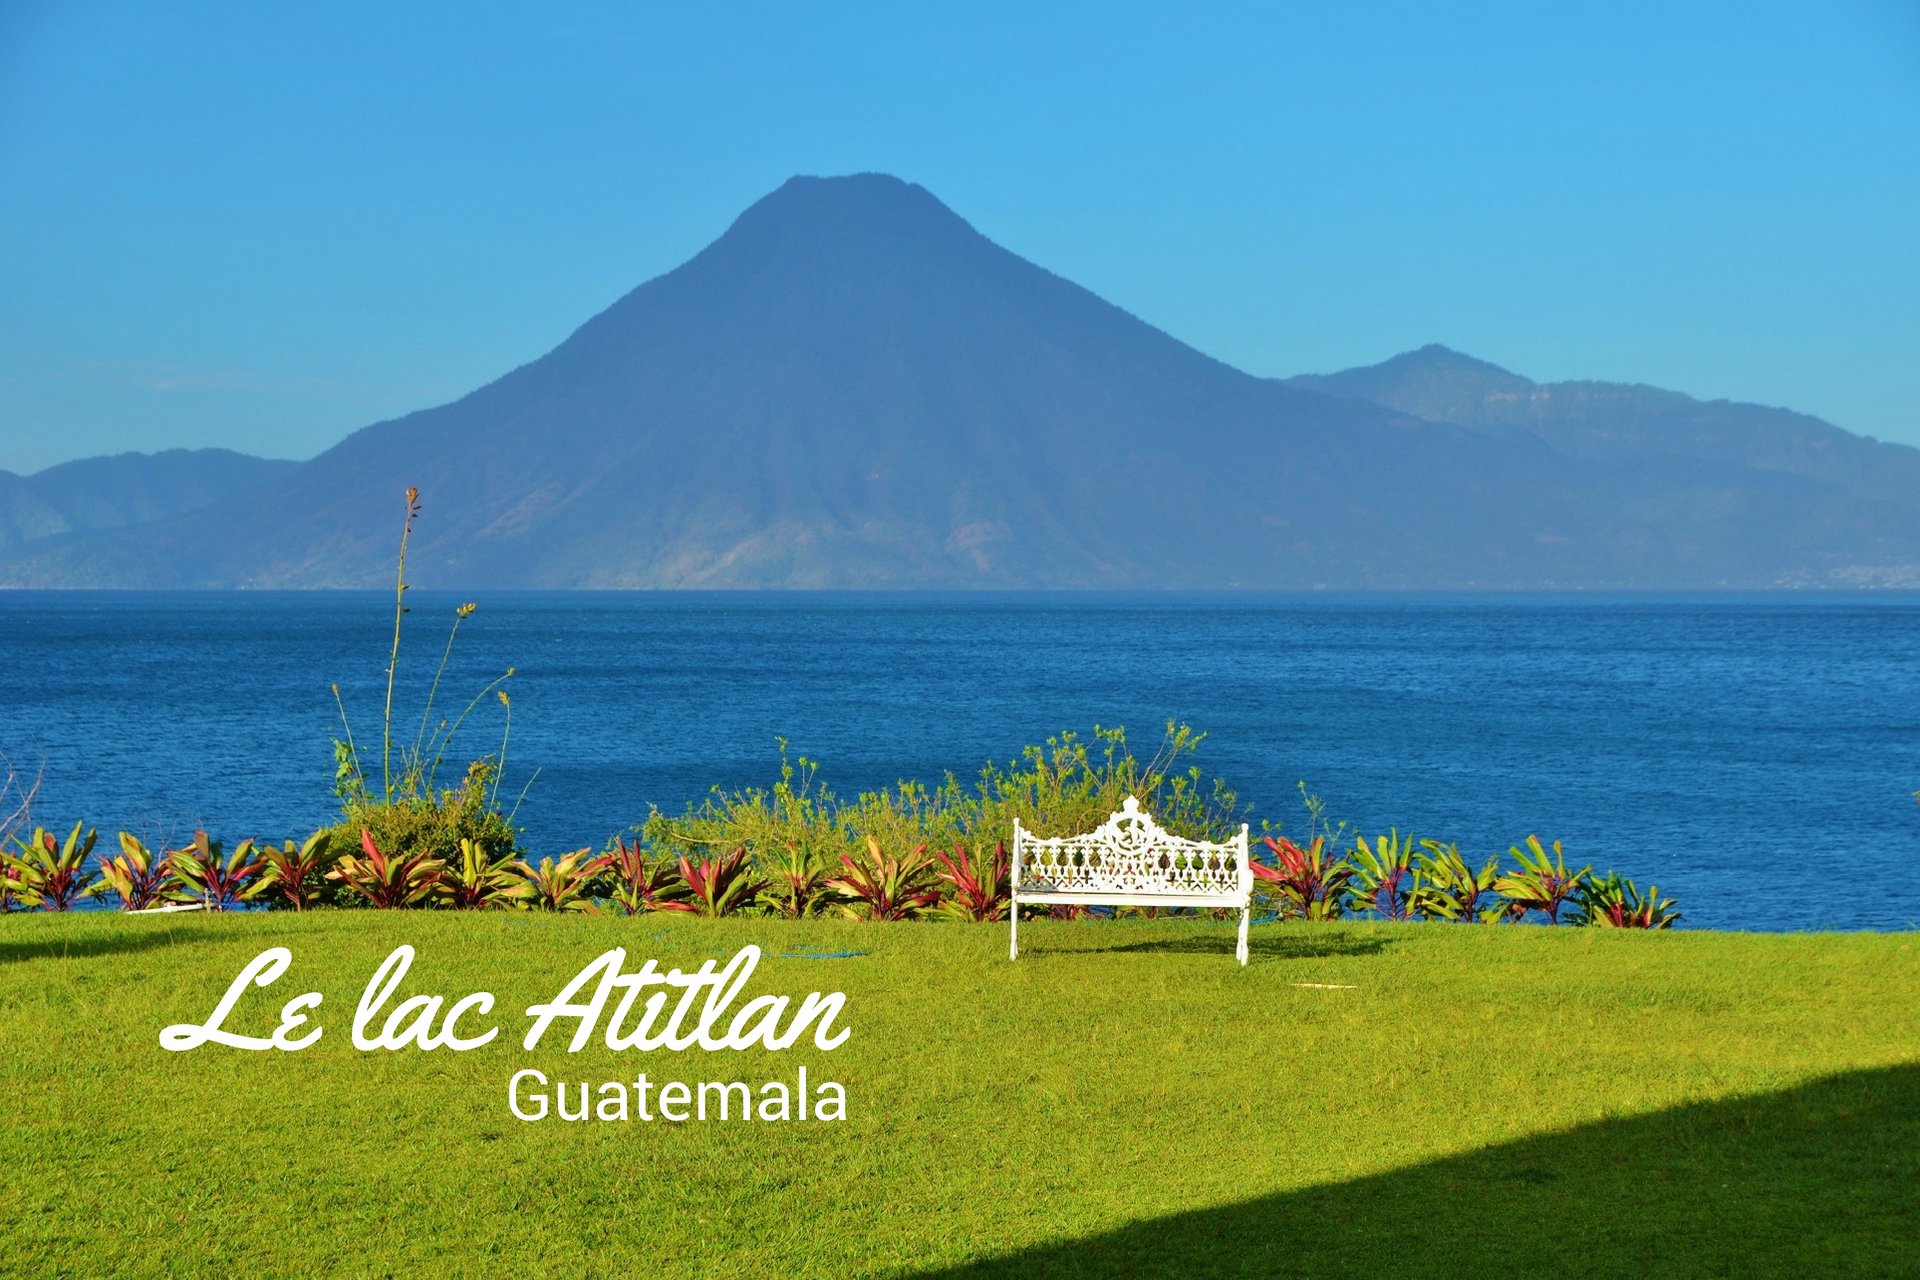 Guatemala - Lac Atitlan - Dreams World - Blog voyage